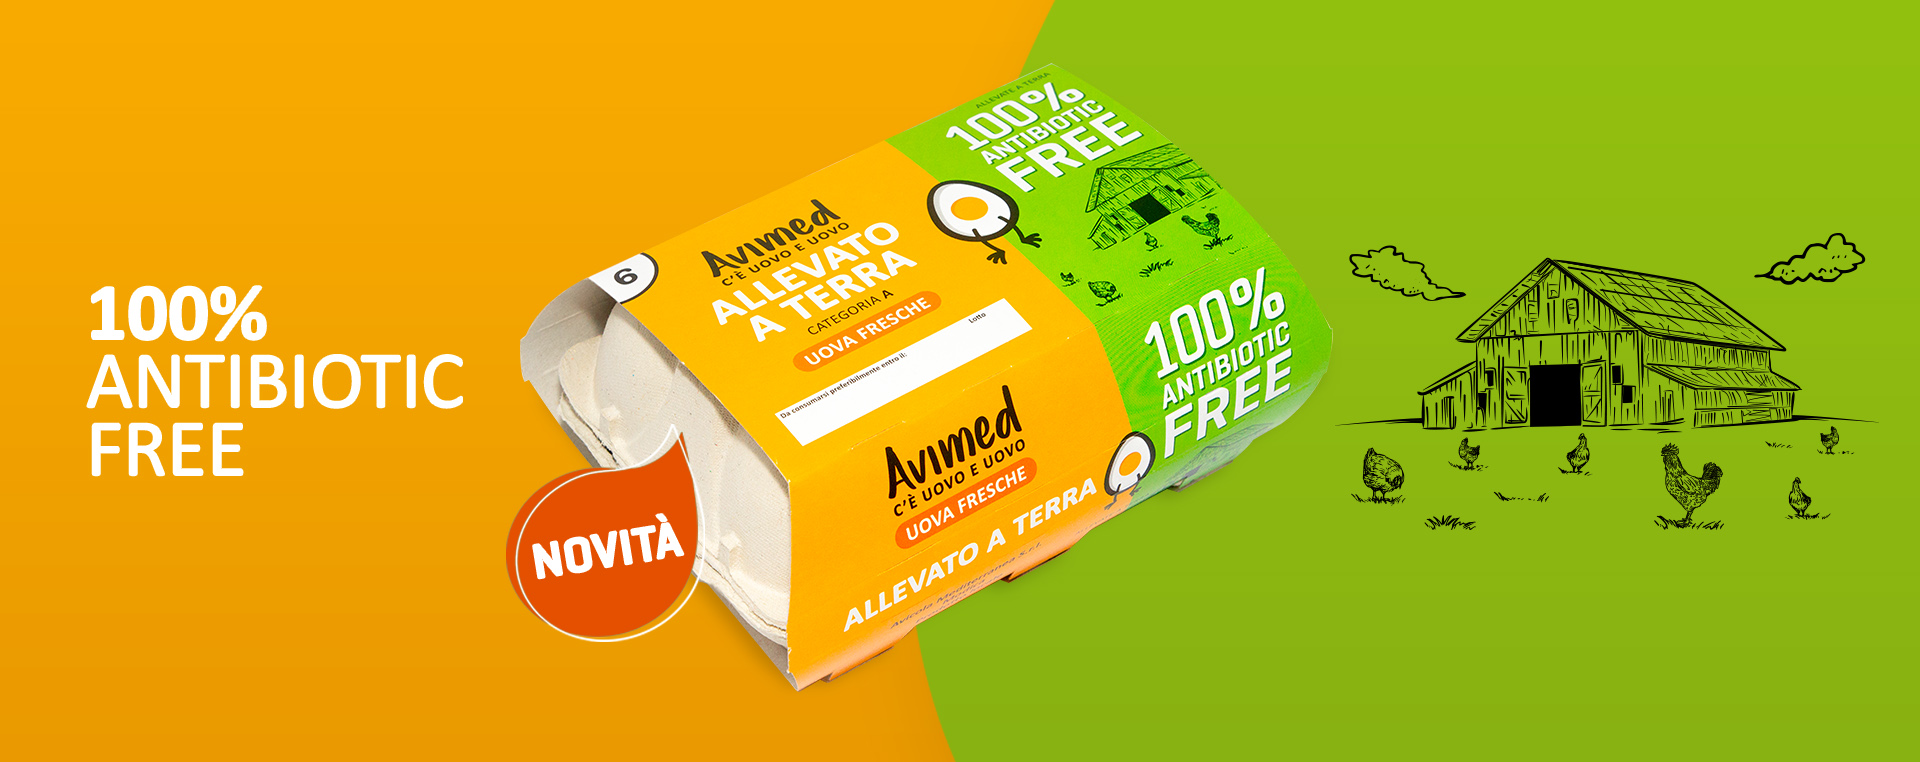 Avimed uova antibiotic free